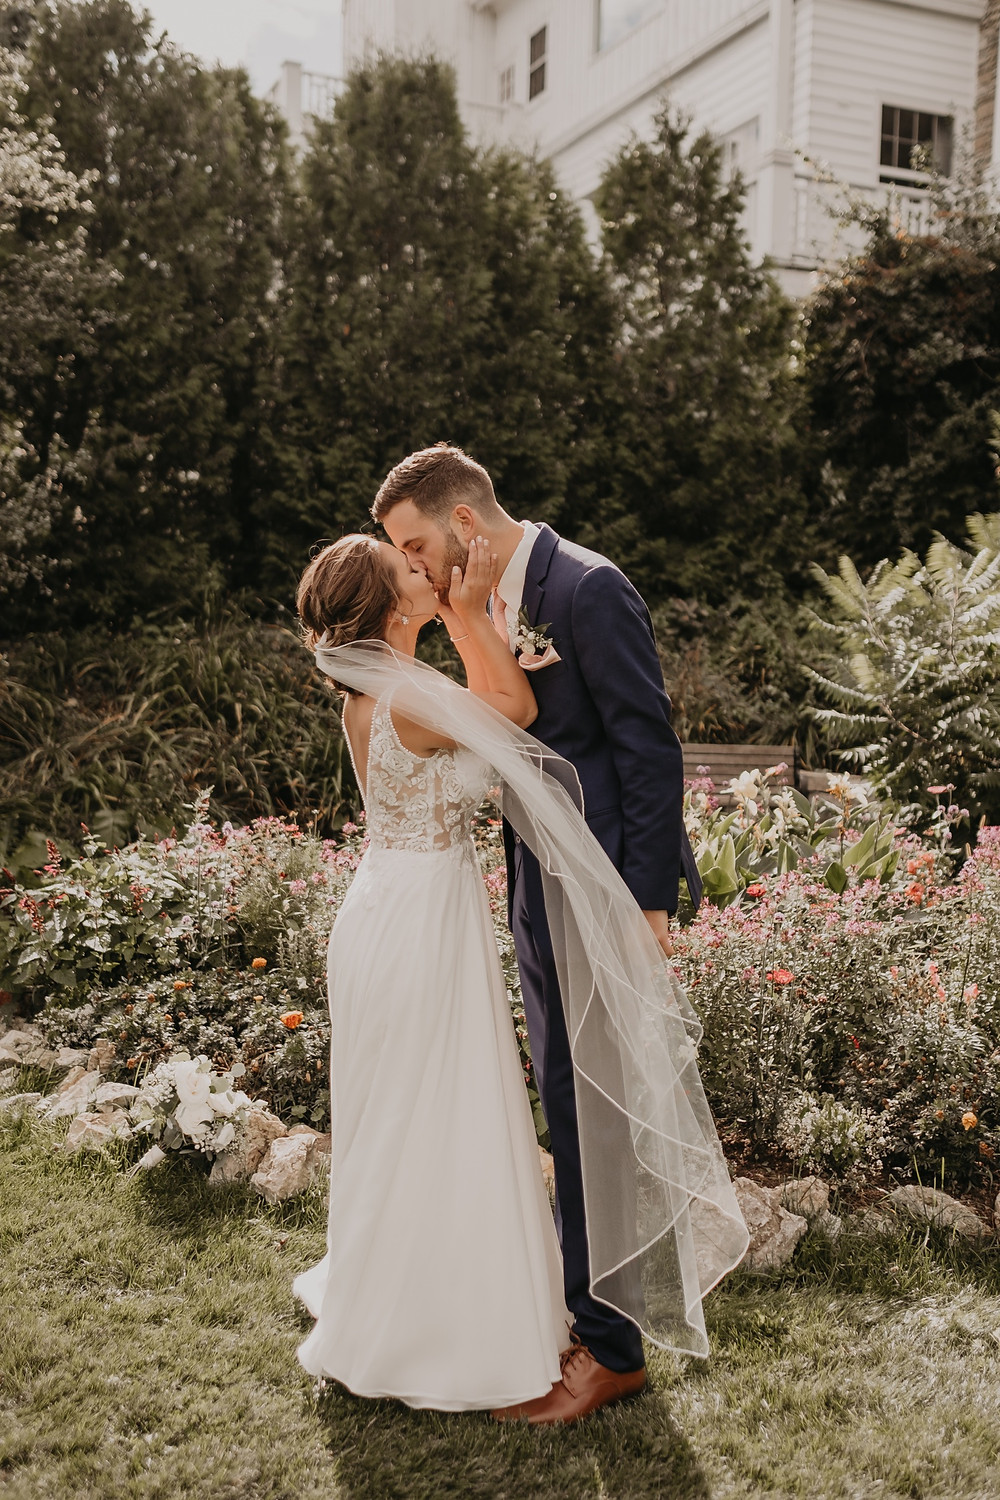 Bride and groom in flower garden for wedding photos. Photographed by Nicole Leanne Photography.